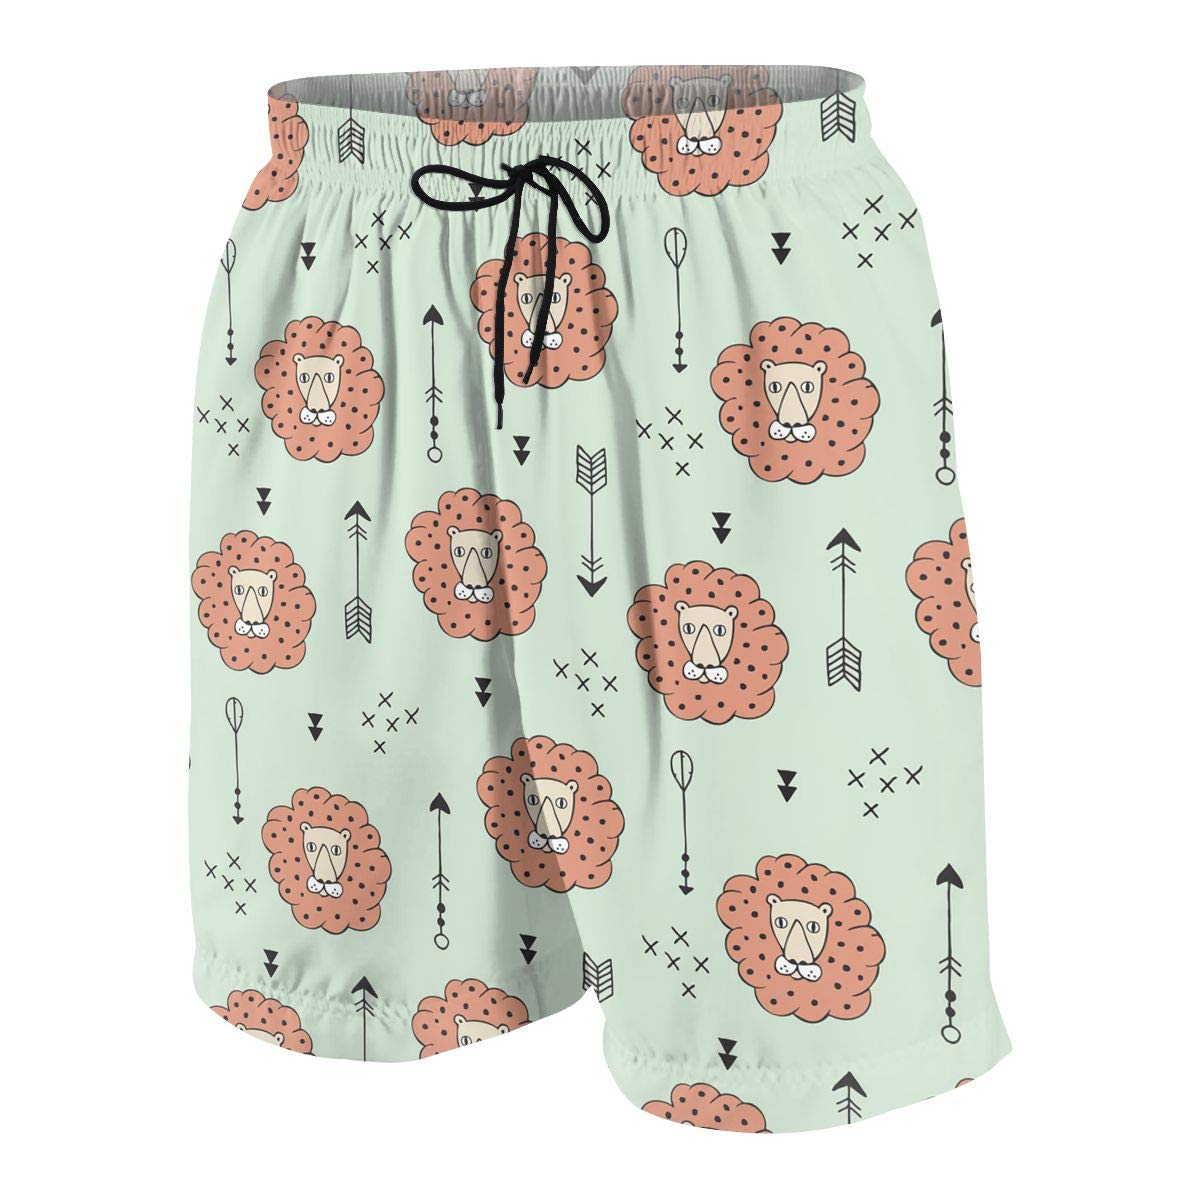 Orange Lion Head Loon Teen Swim Trunks Bathing Suit Shorts Board Beach